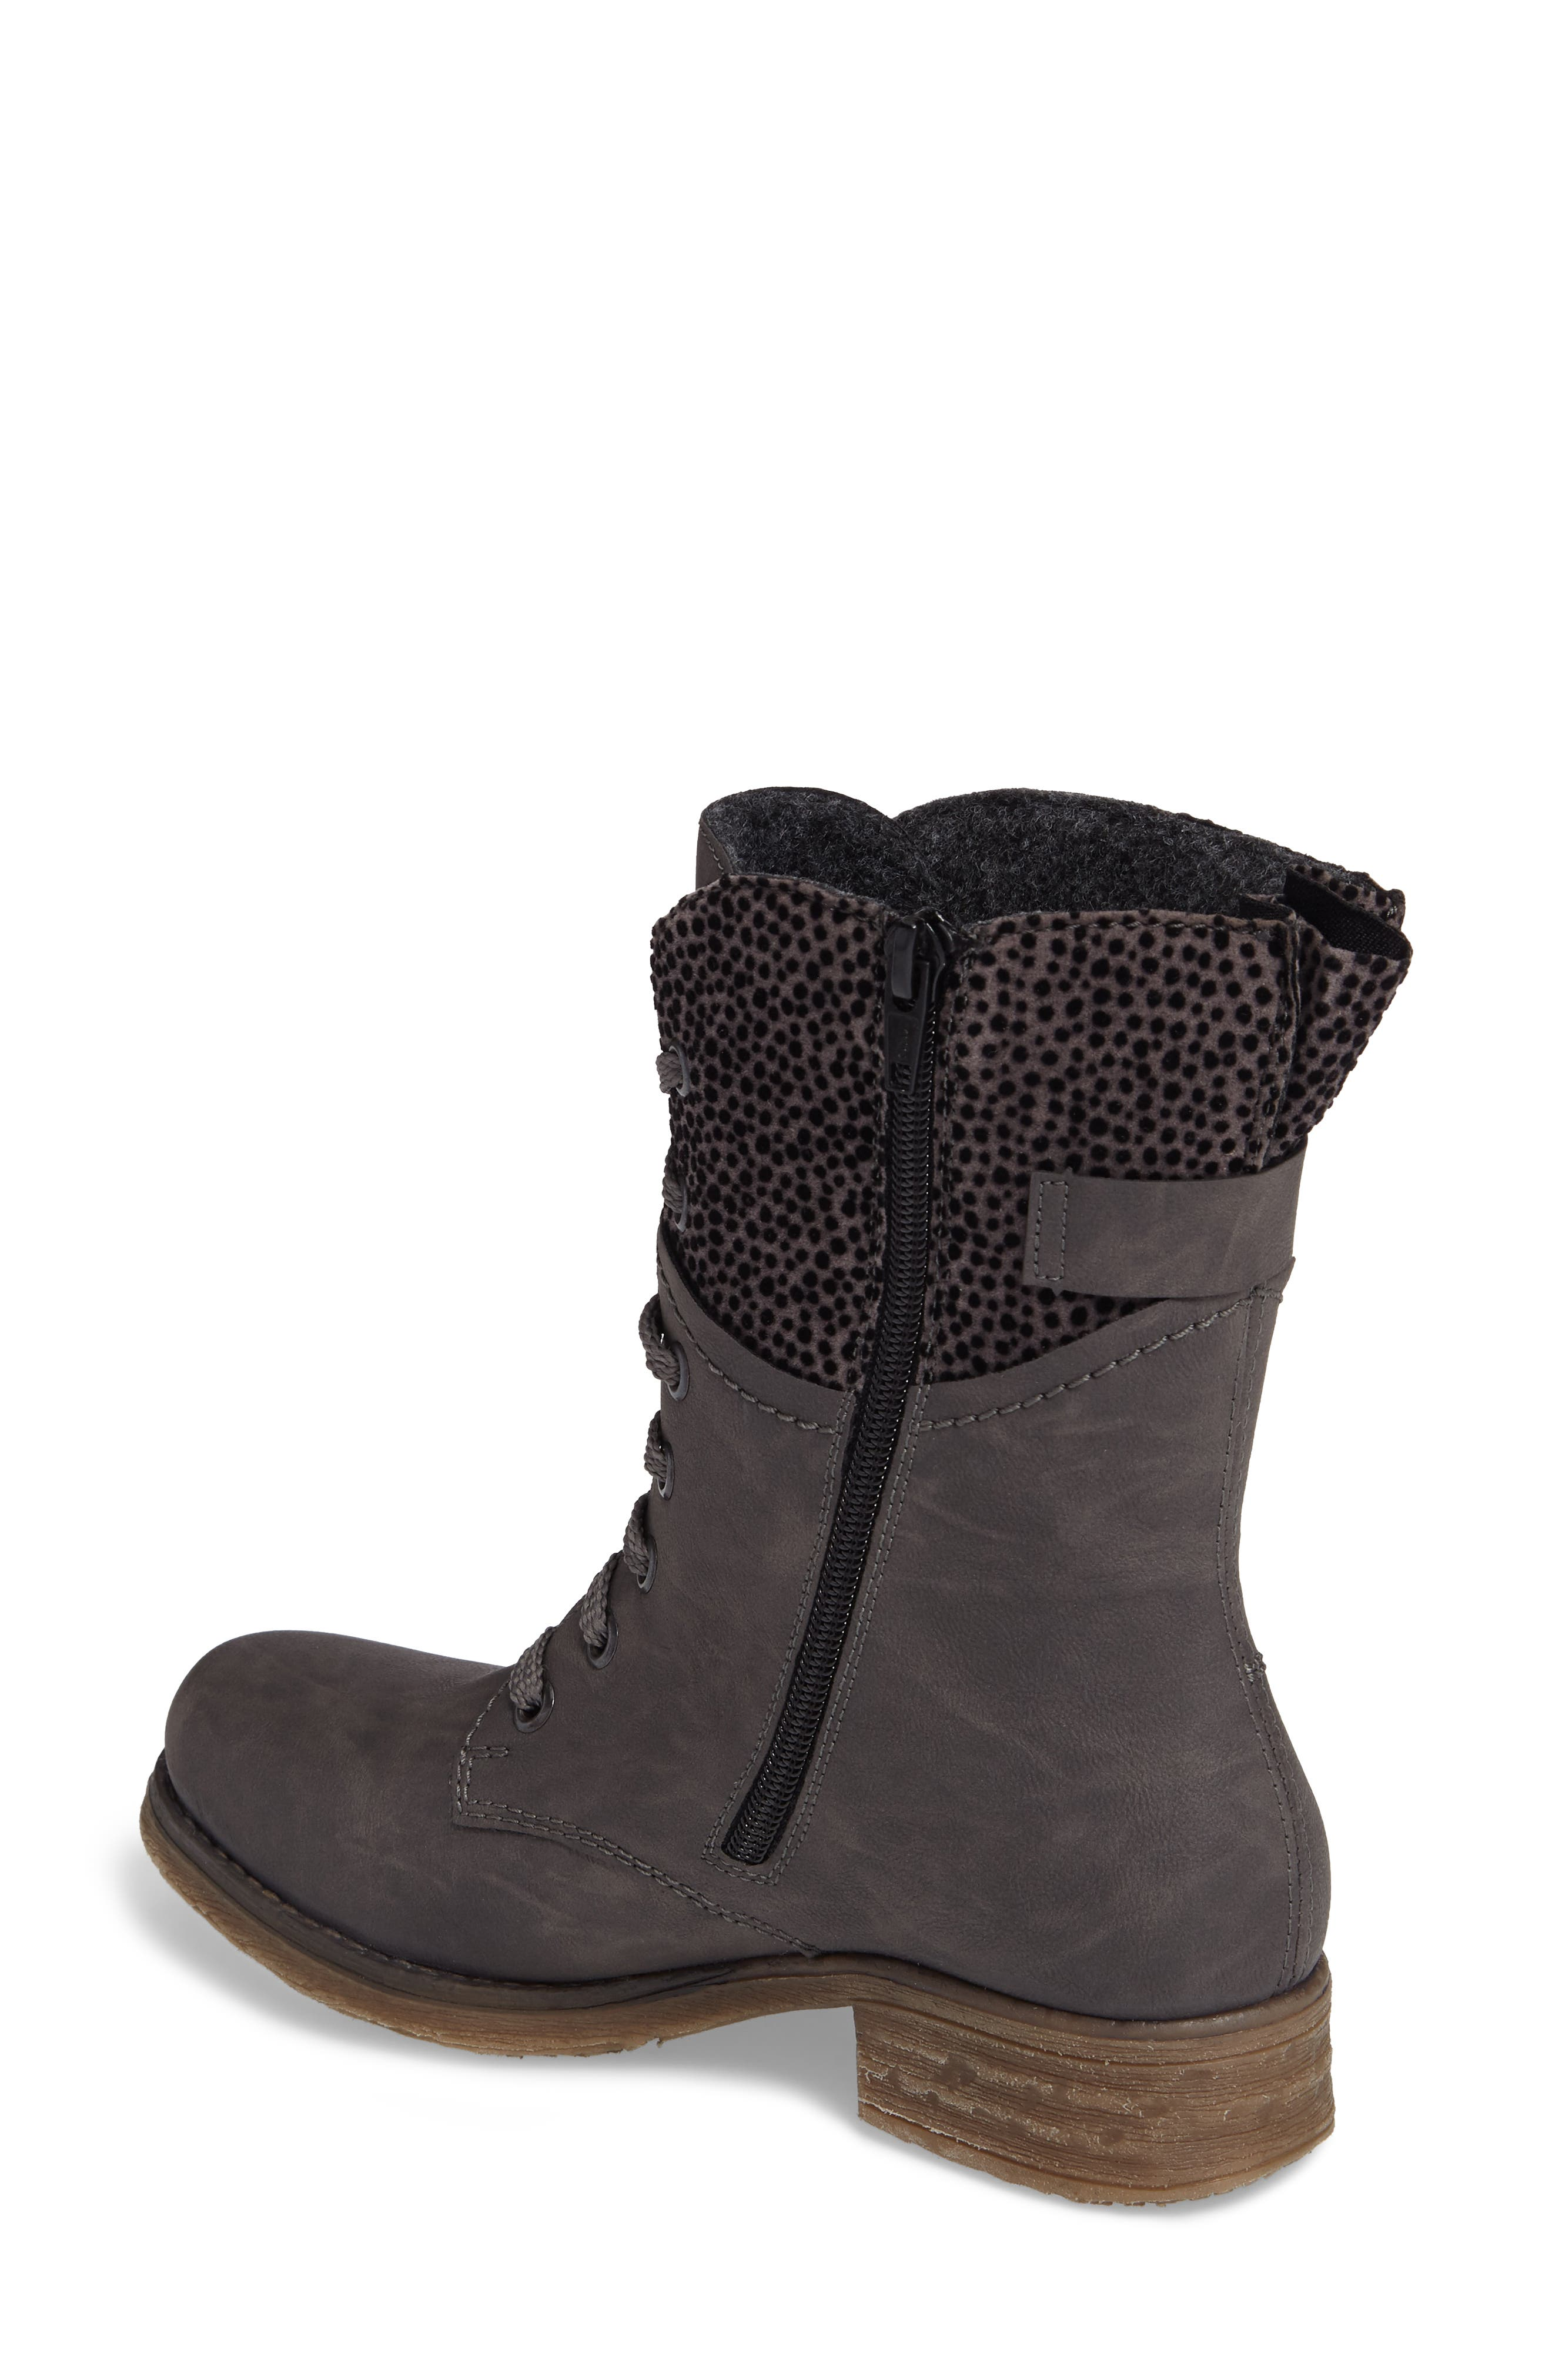 'Fee 04' Lace-Up Boot,                             Alternate thumbnail 2, color,                             FUMO FAUX LEATHER